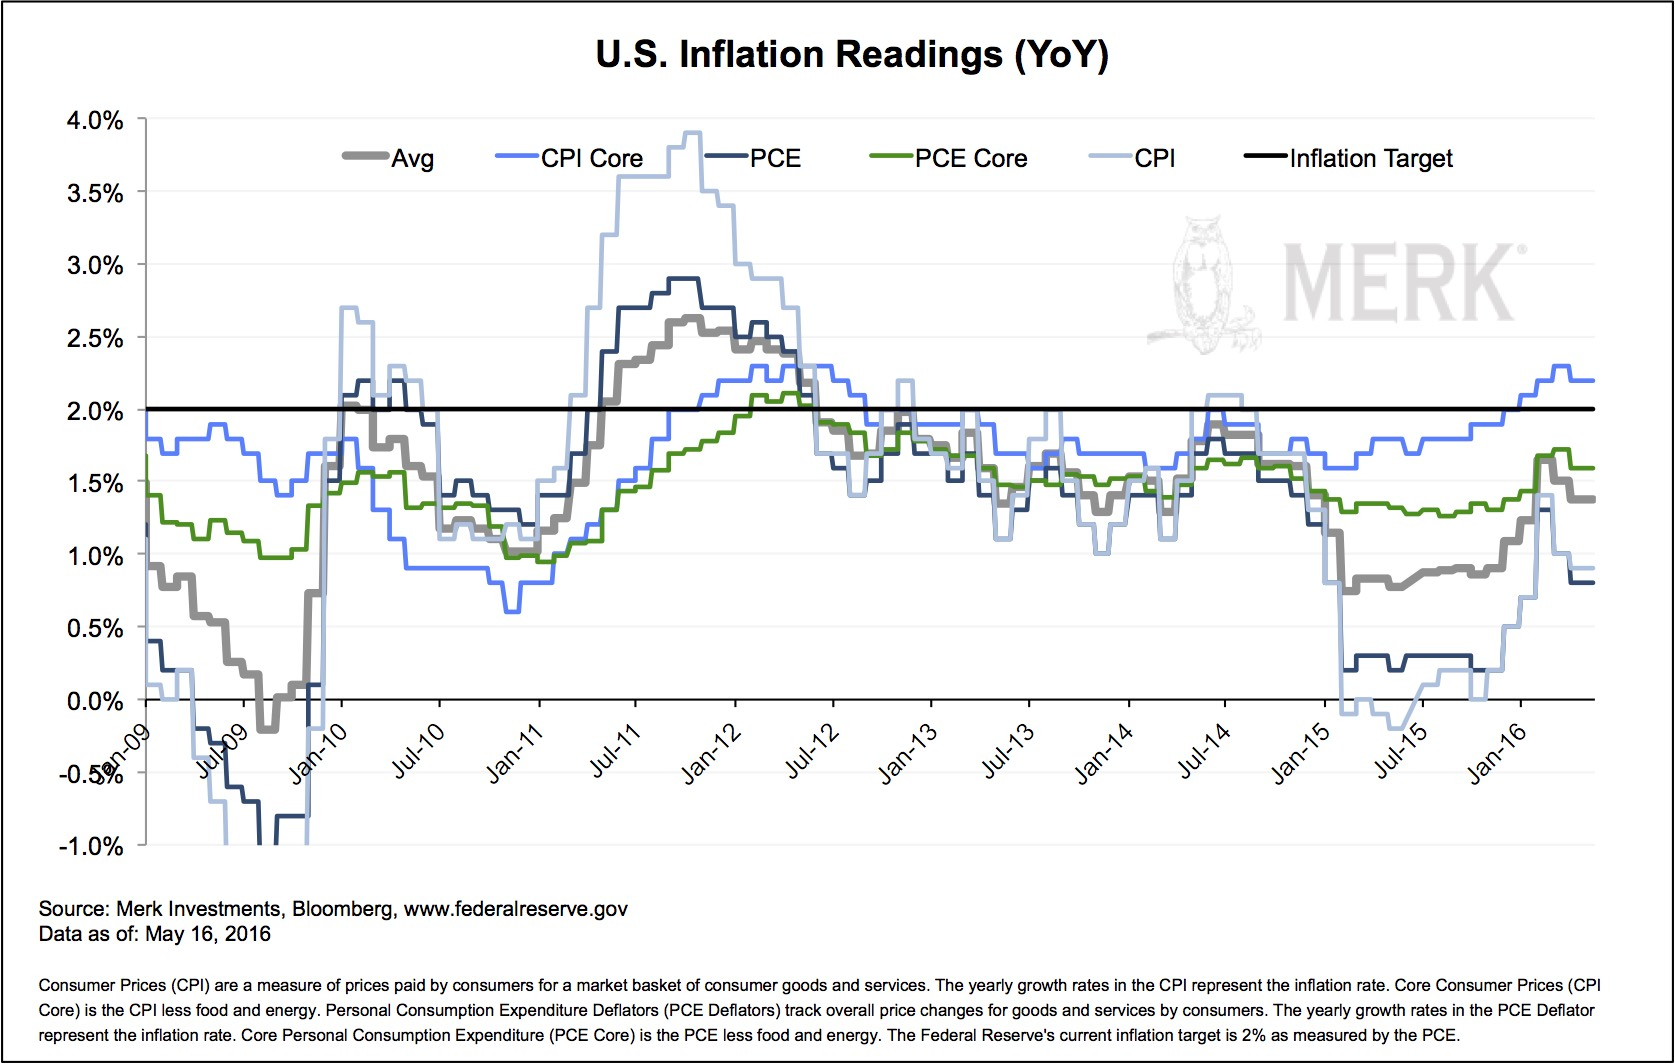 Description: MILLC.Marketing:Insights newsletters and blogs:2016 Merk Insights:2016-05-09 support:2016-05-16-inflation.jpg